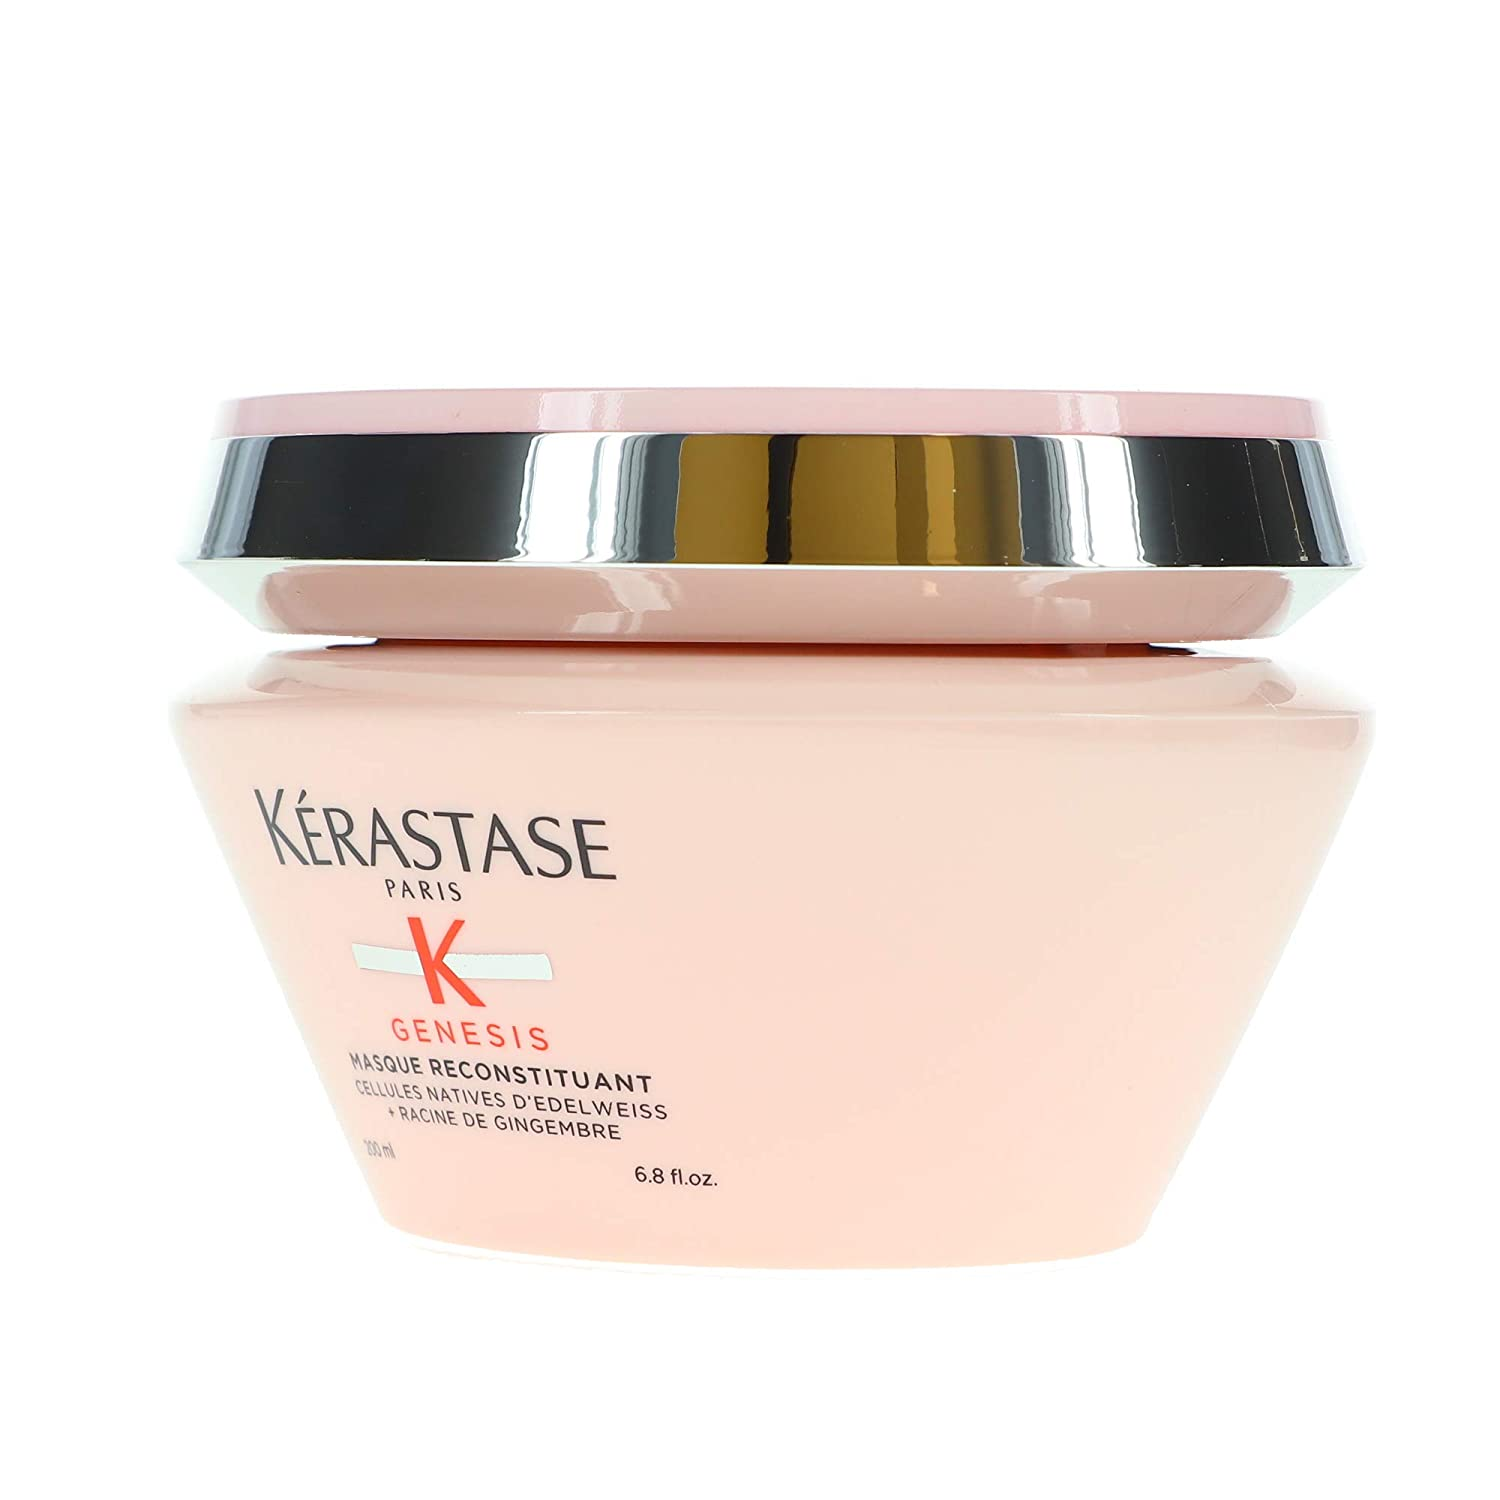 Genesis Masque Reconstituant Hair Mask by Kerastase, the best French hair mask overall.